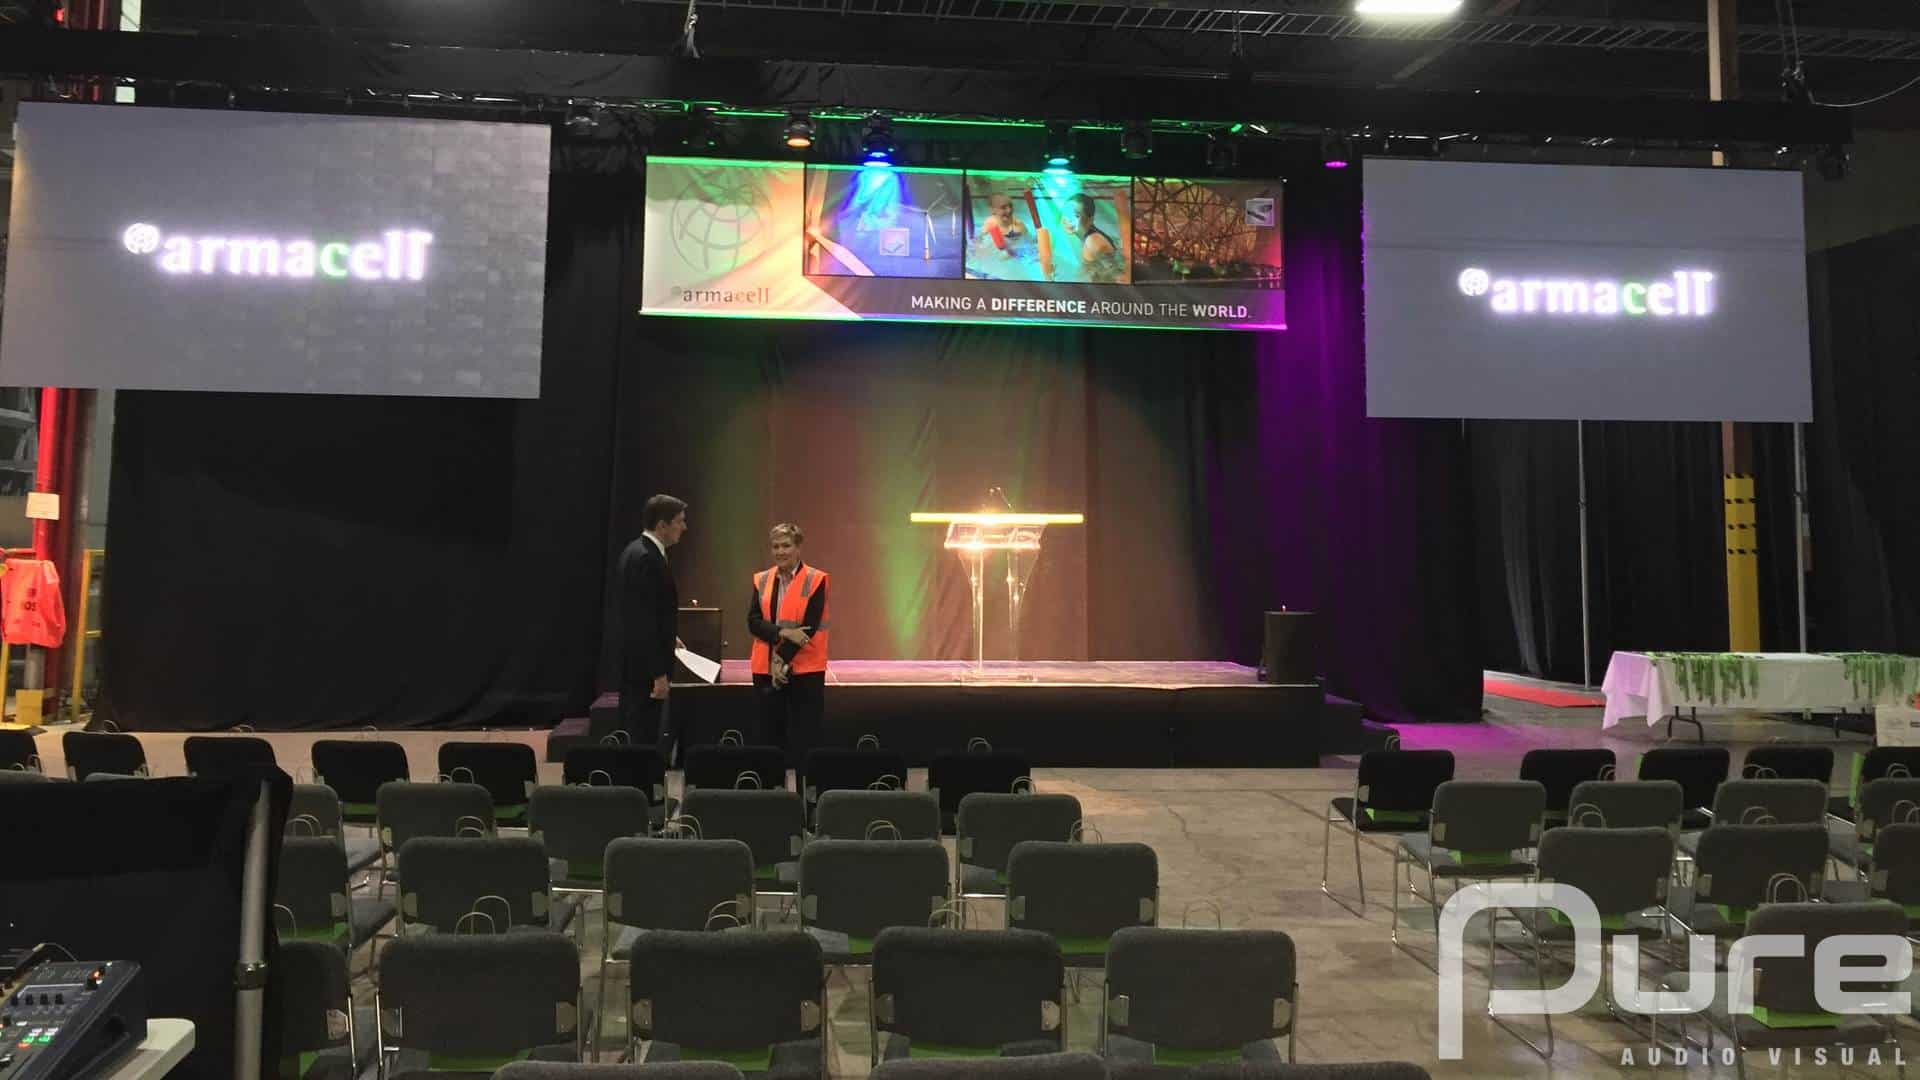 A presentation with a small stage, podium, 2 LED video walls, truss, and auras